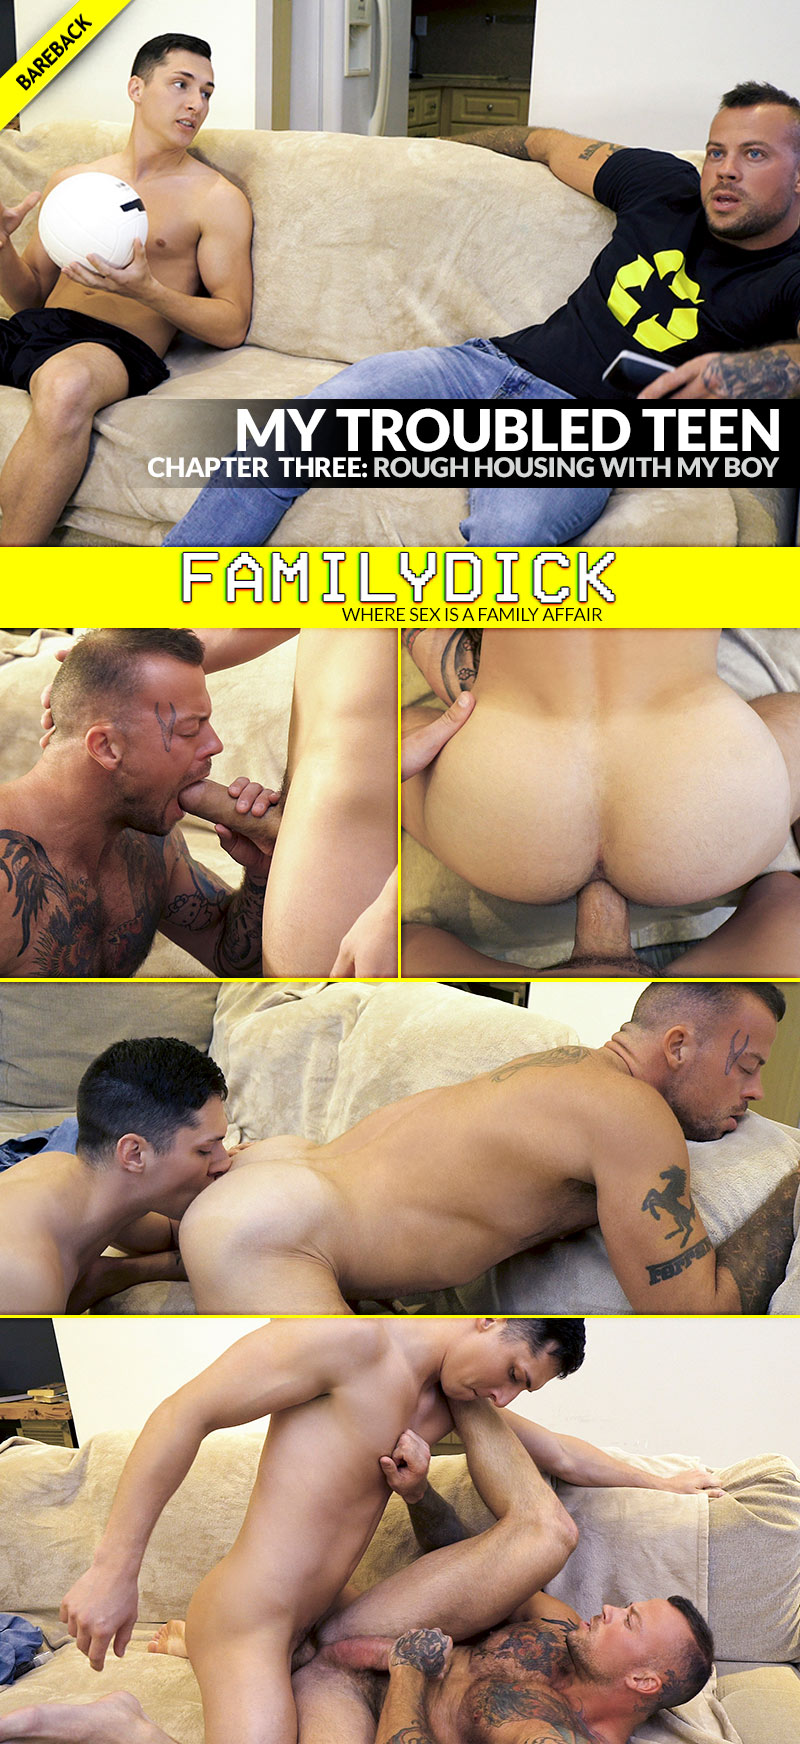 My Troubled Teen: ROUGHHOUSING WITH MY BOY (with Sean Duran and Tristan Duran) at FamilyDick